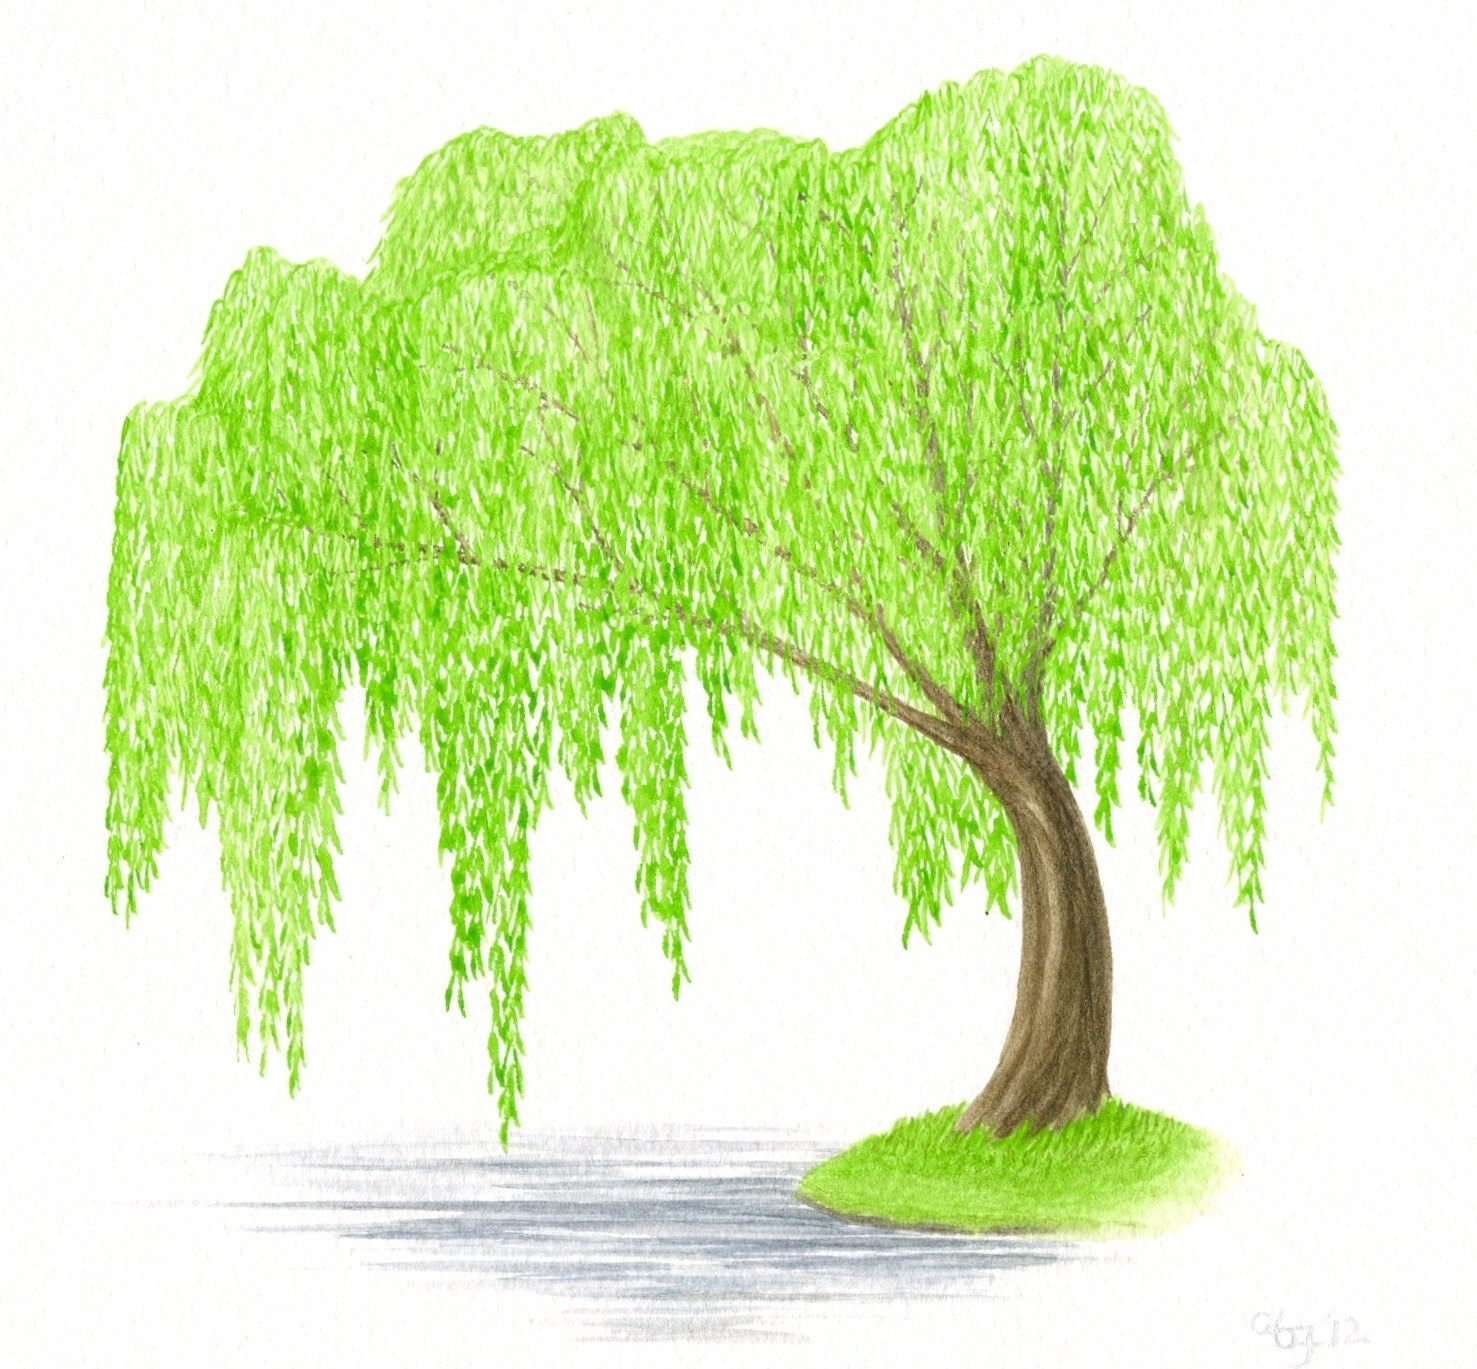 Salix clipart image free library Free Willow Leaf Cliparts, Download Free Clip Art, Free Clip ... image free library